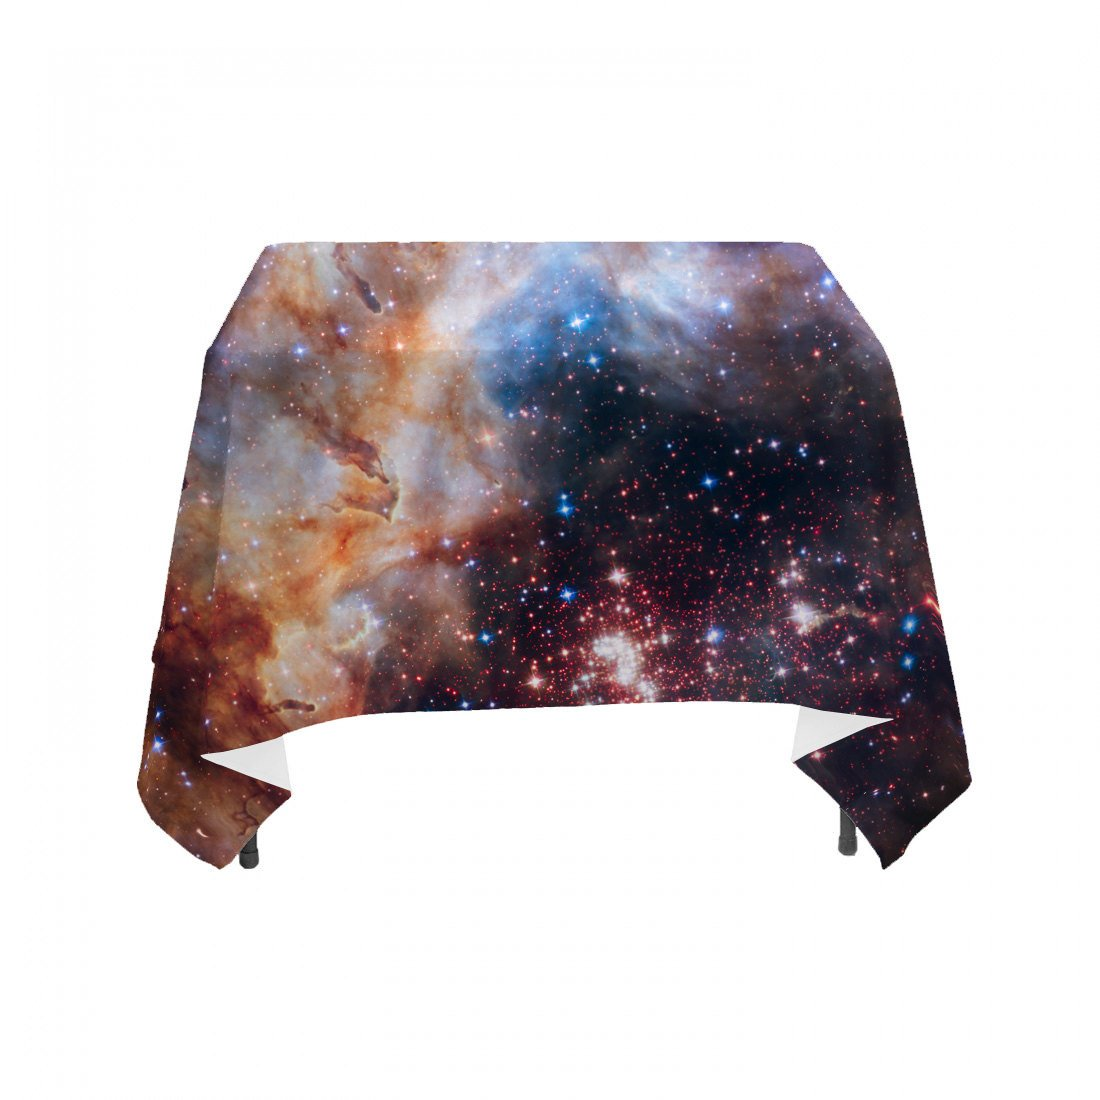 Space Galaxy – Celestial Fireworks, Hubble 25th Anniversary – Linen Table Cloth